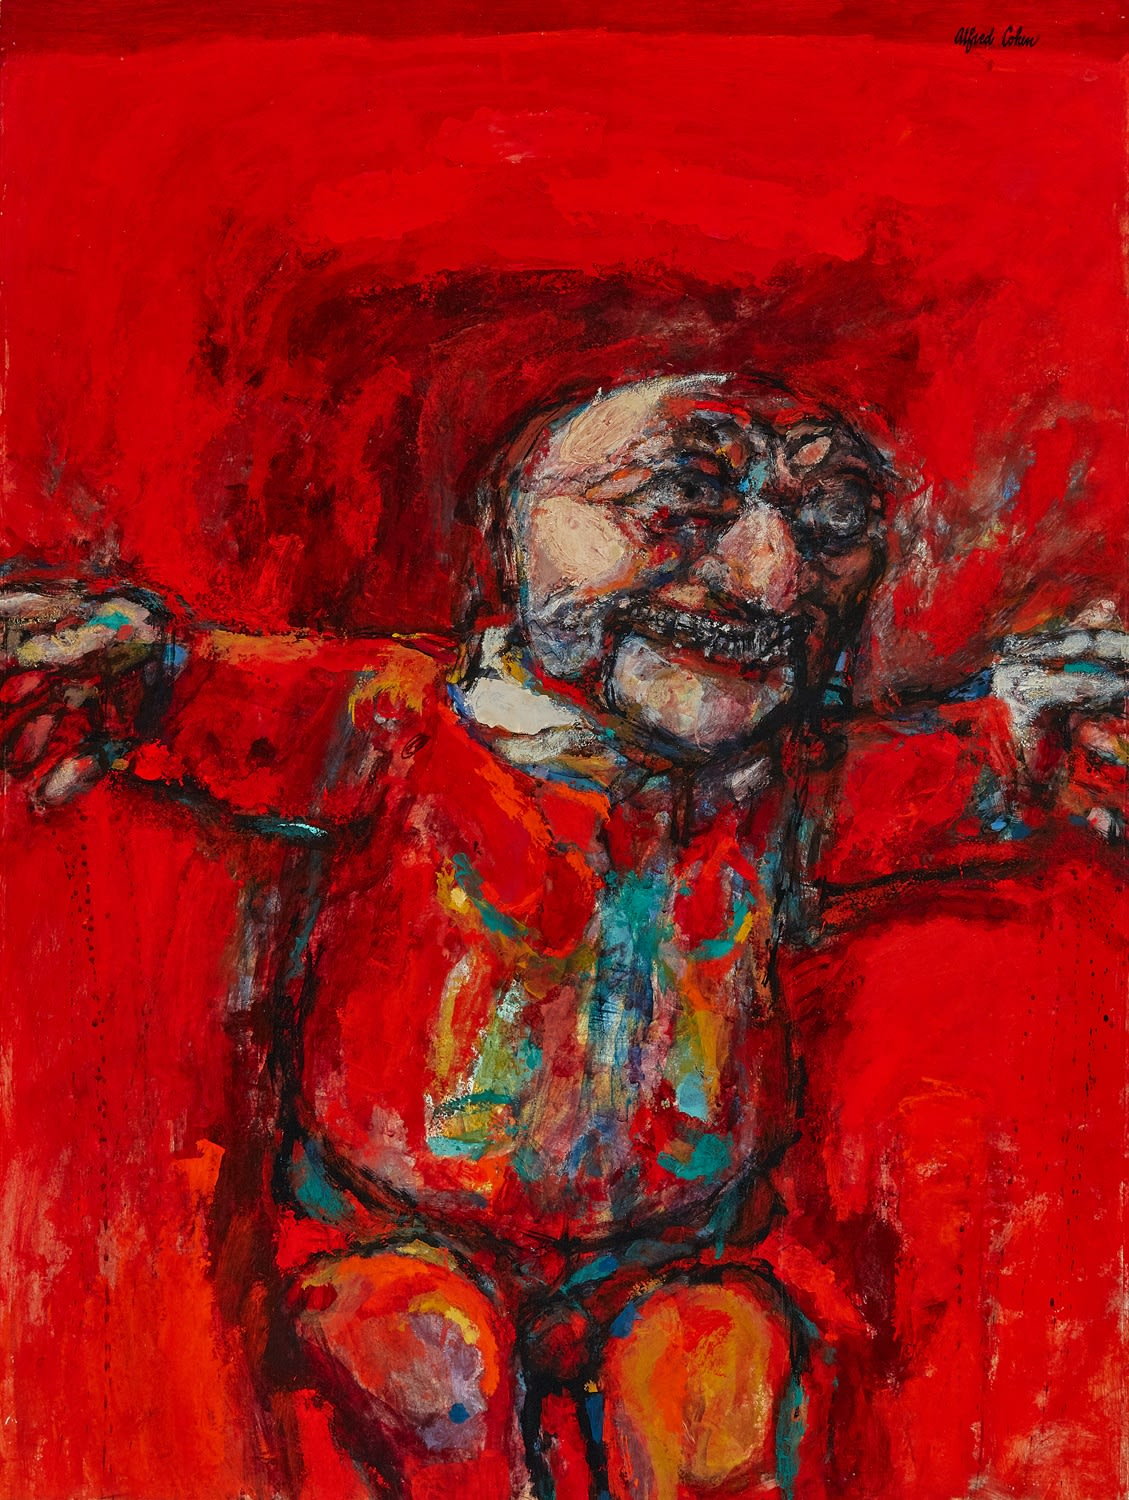 Alfred Cohen (1920-2001) Polichinelle (The Red Punch) 1963 Acrylic on hardboard 101.6 x 76.2 cm Alfred Cohen Art Foundation: gift of Paul Zuckerman © Estate of Alfred Cohen 2020